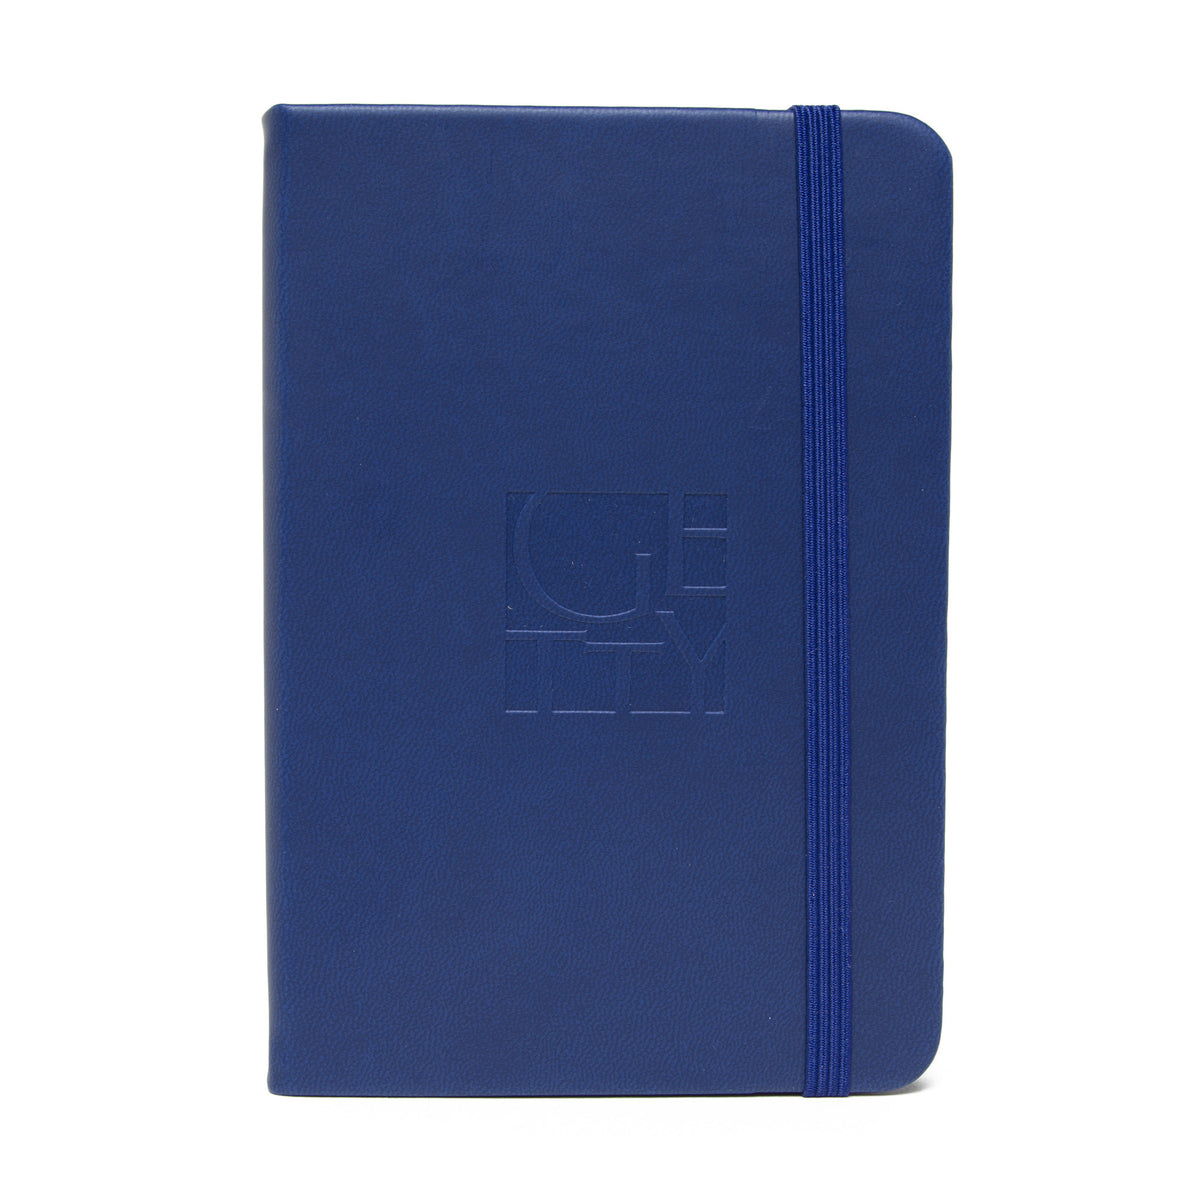 Getty Wordmark Journal-Pocket Size- Blue | Getty Store